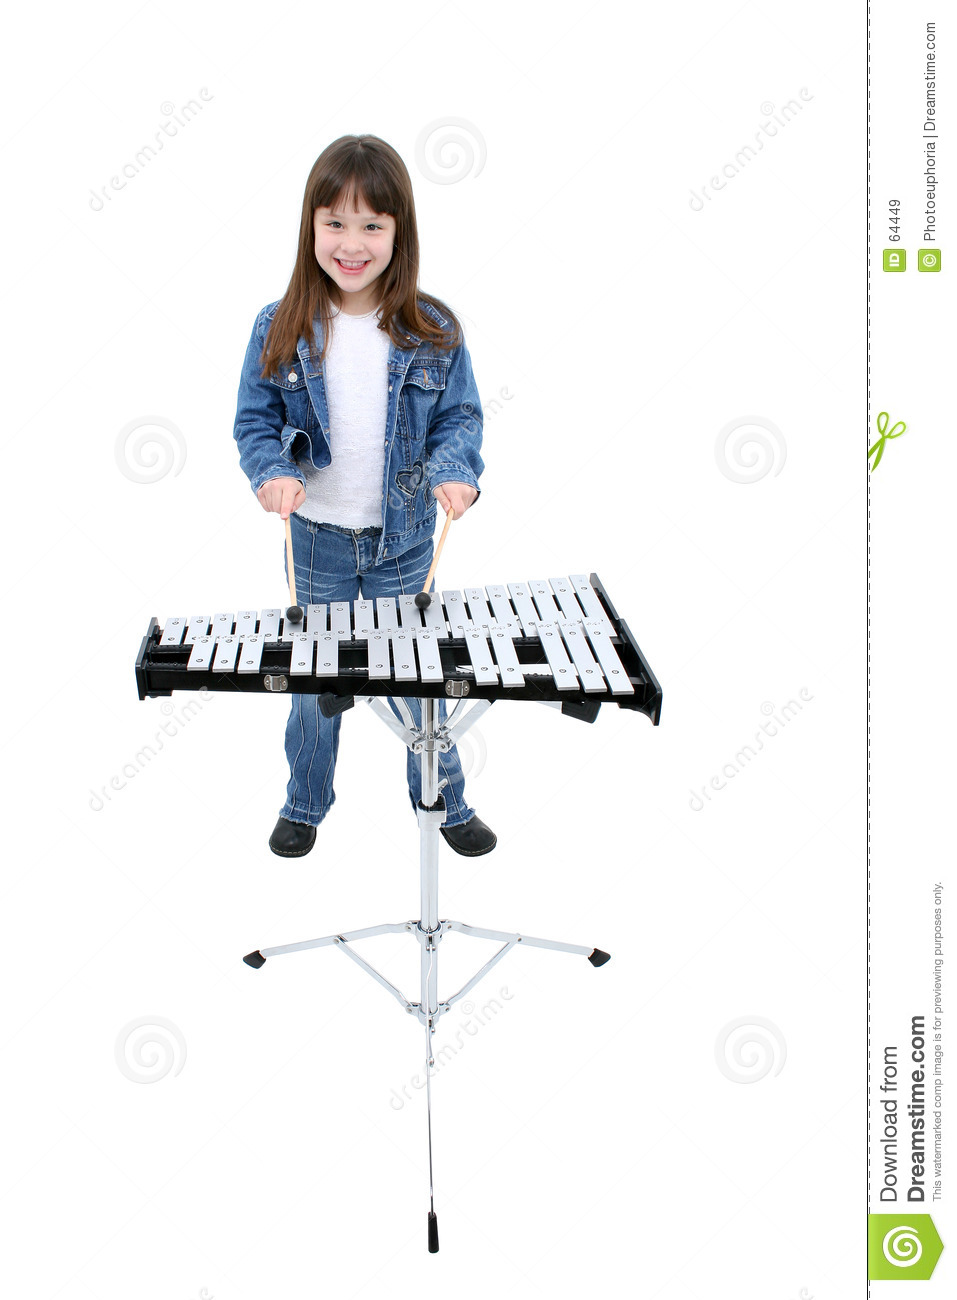 Download Fille (7 ans) jouant Bells image stock. Image du xylophone - 64449